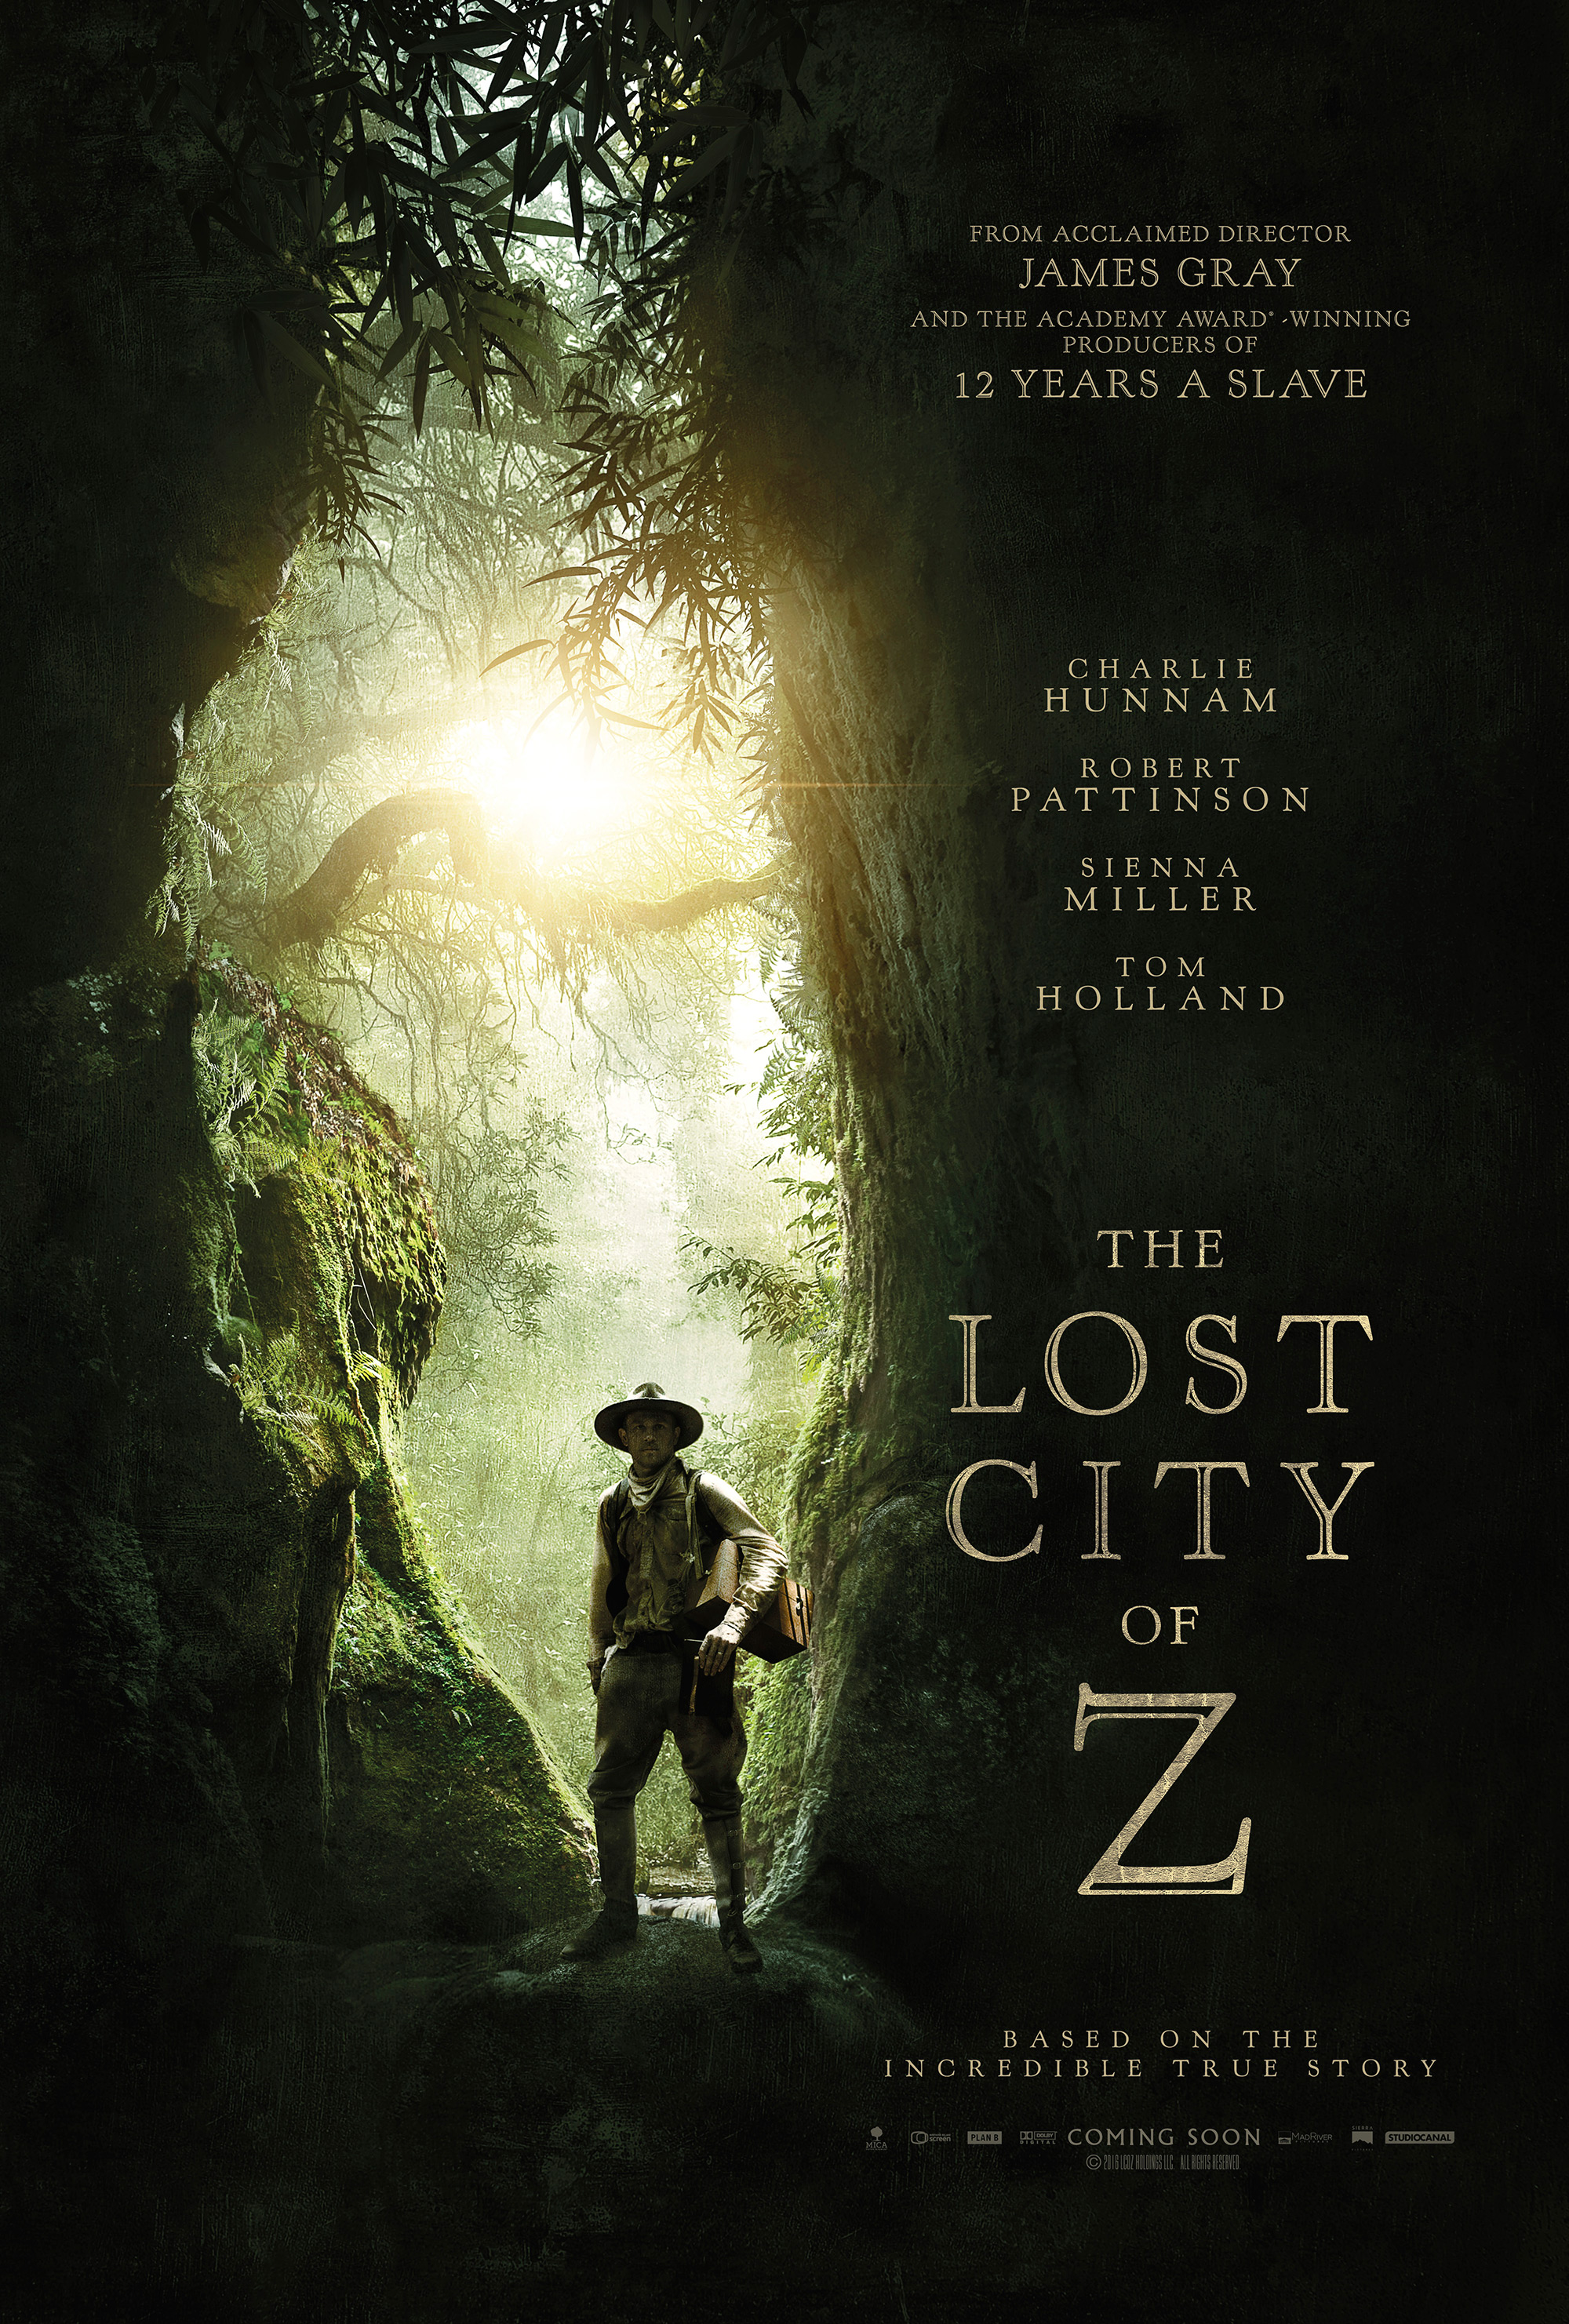 The Lost City of Z Artwork